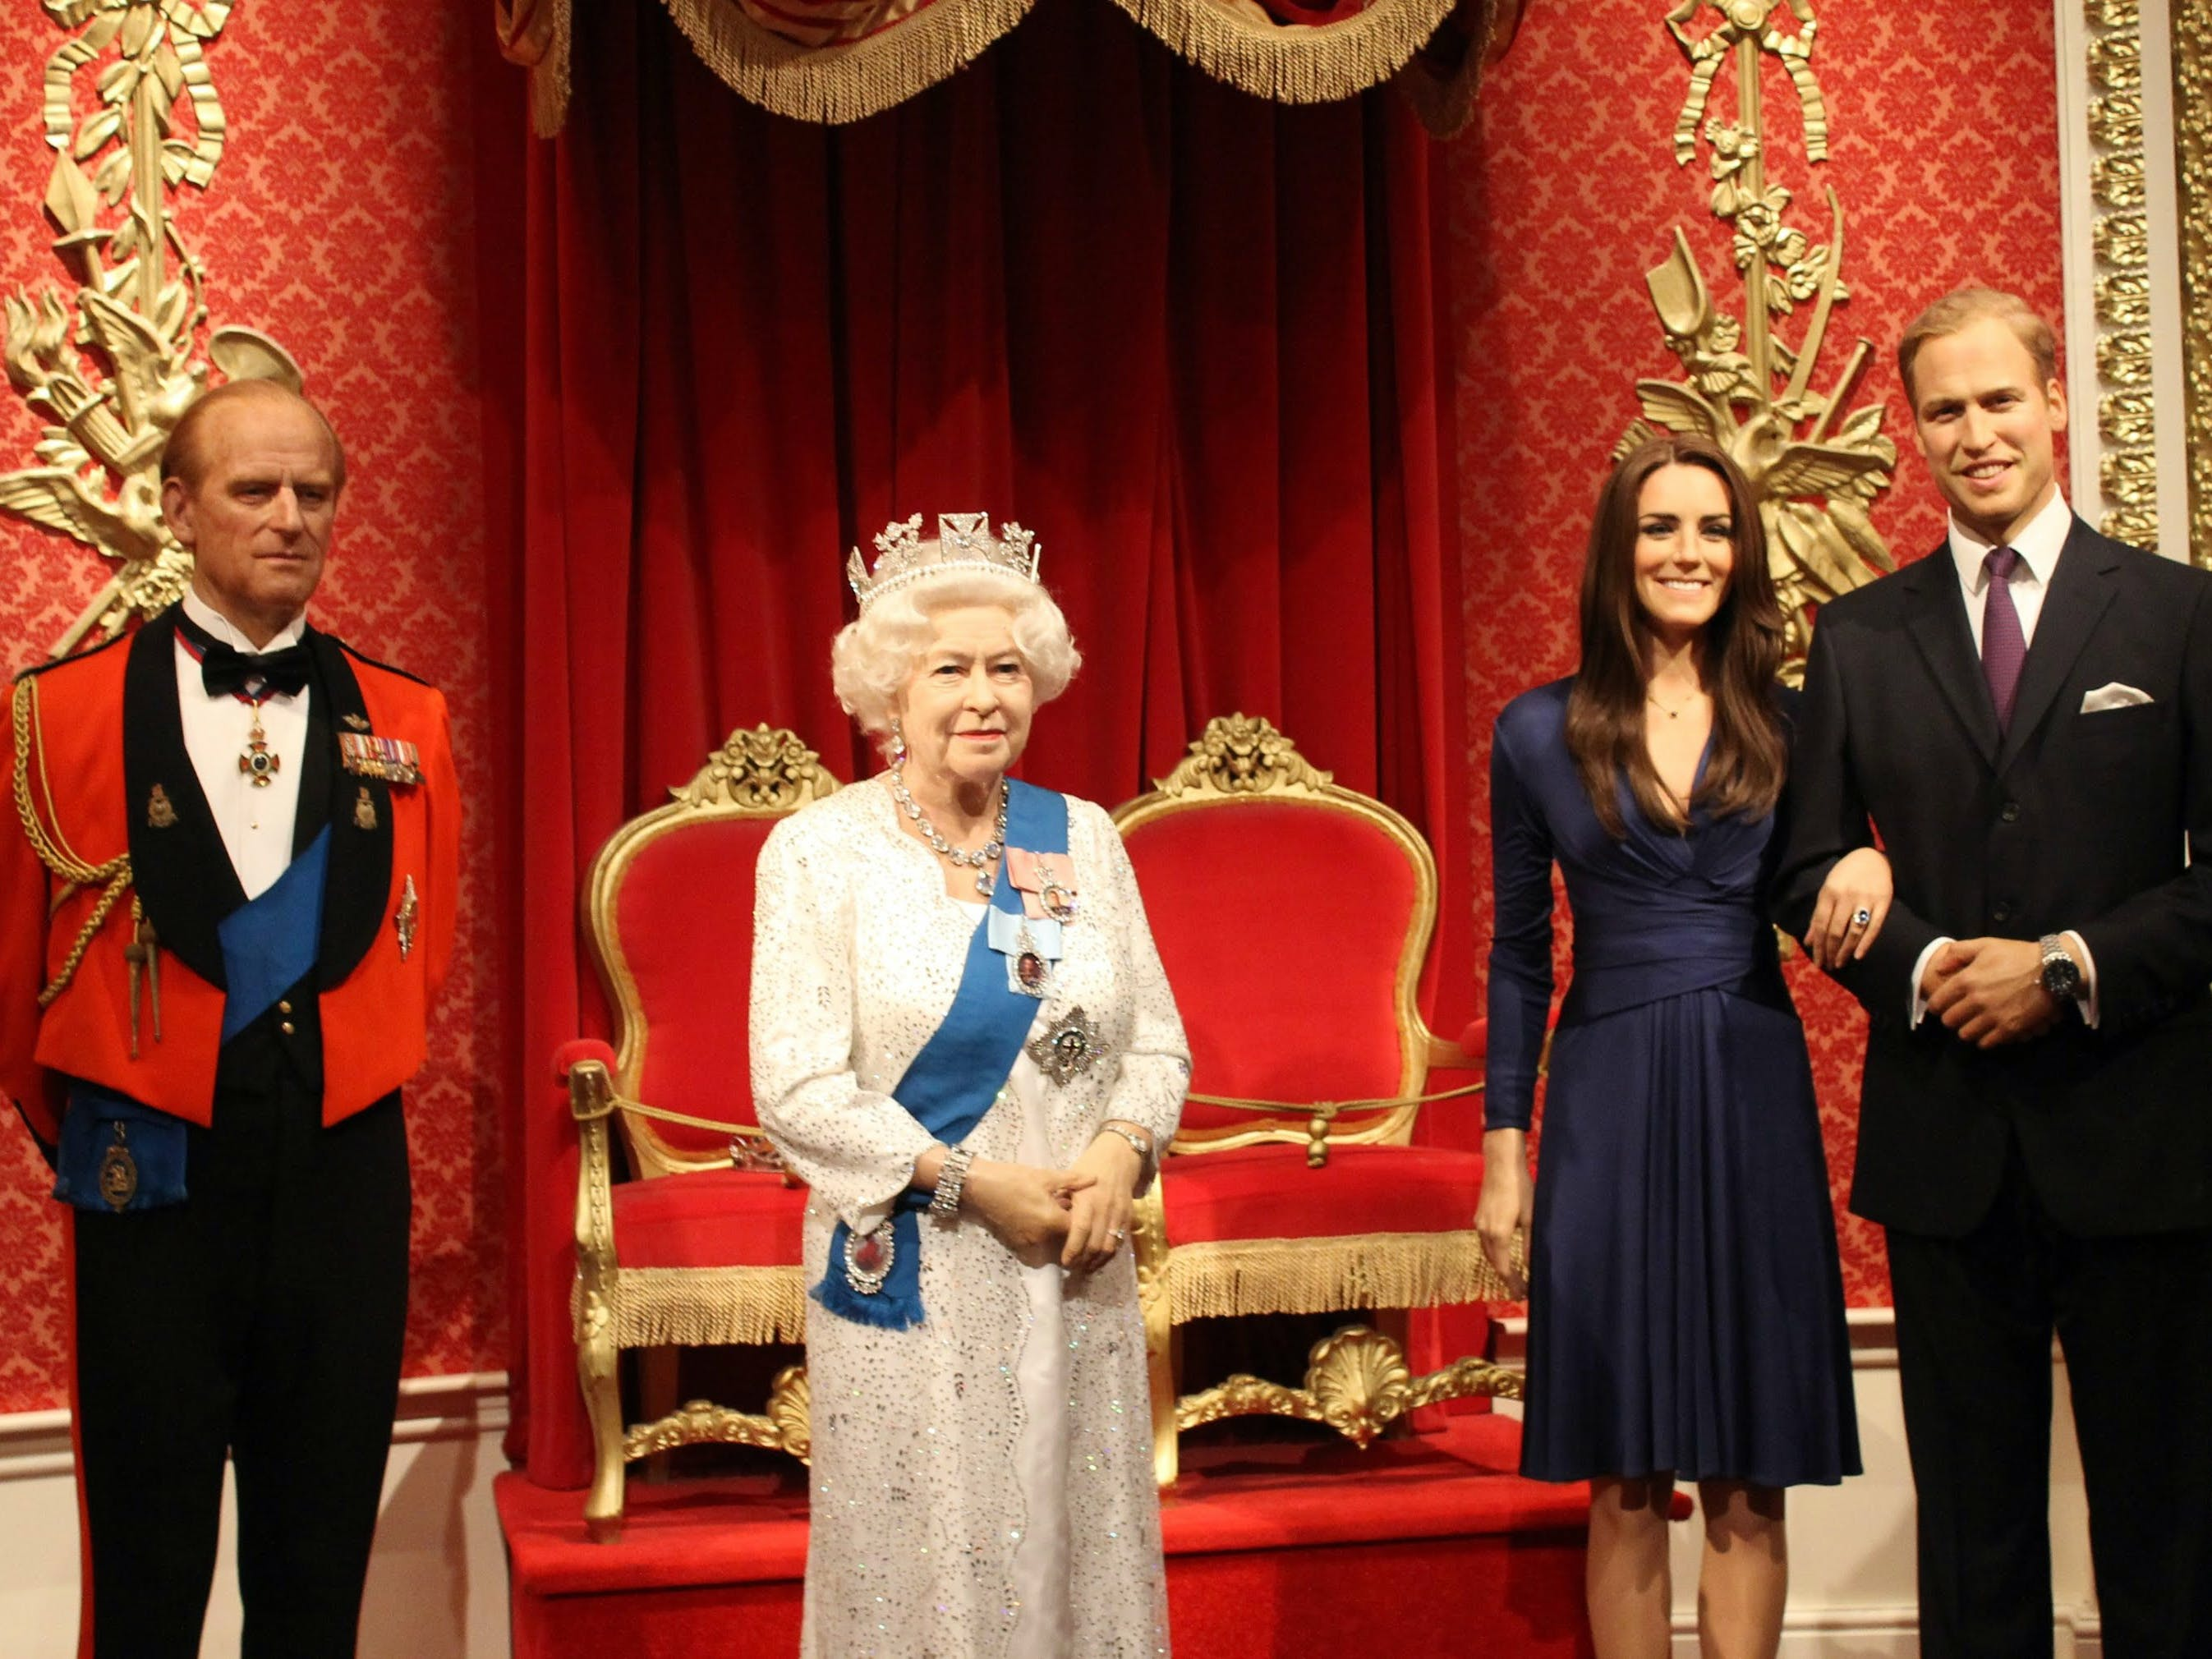 tower of london + madame tussauds-2